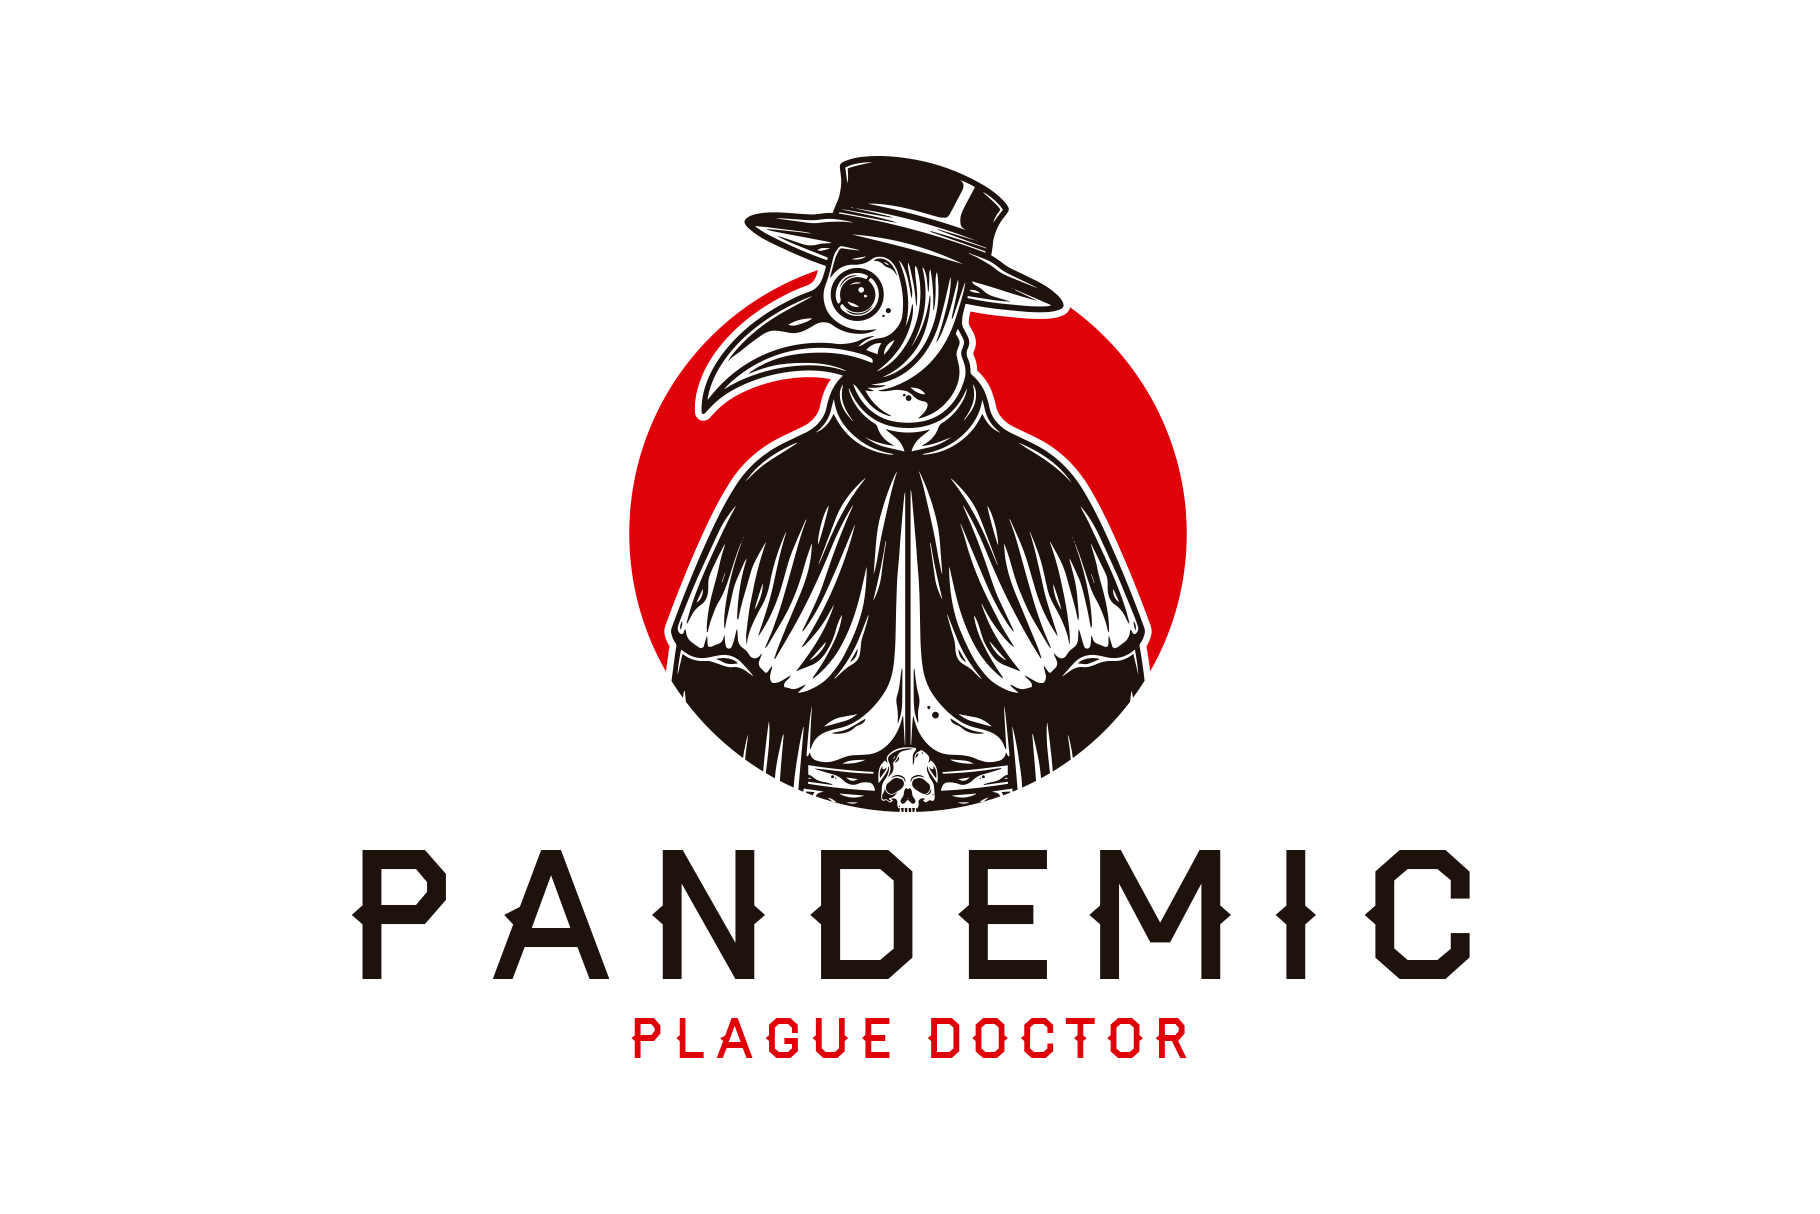 Pandemic Plague Doctor Logo Template Graphic By Vectorwithin